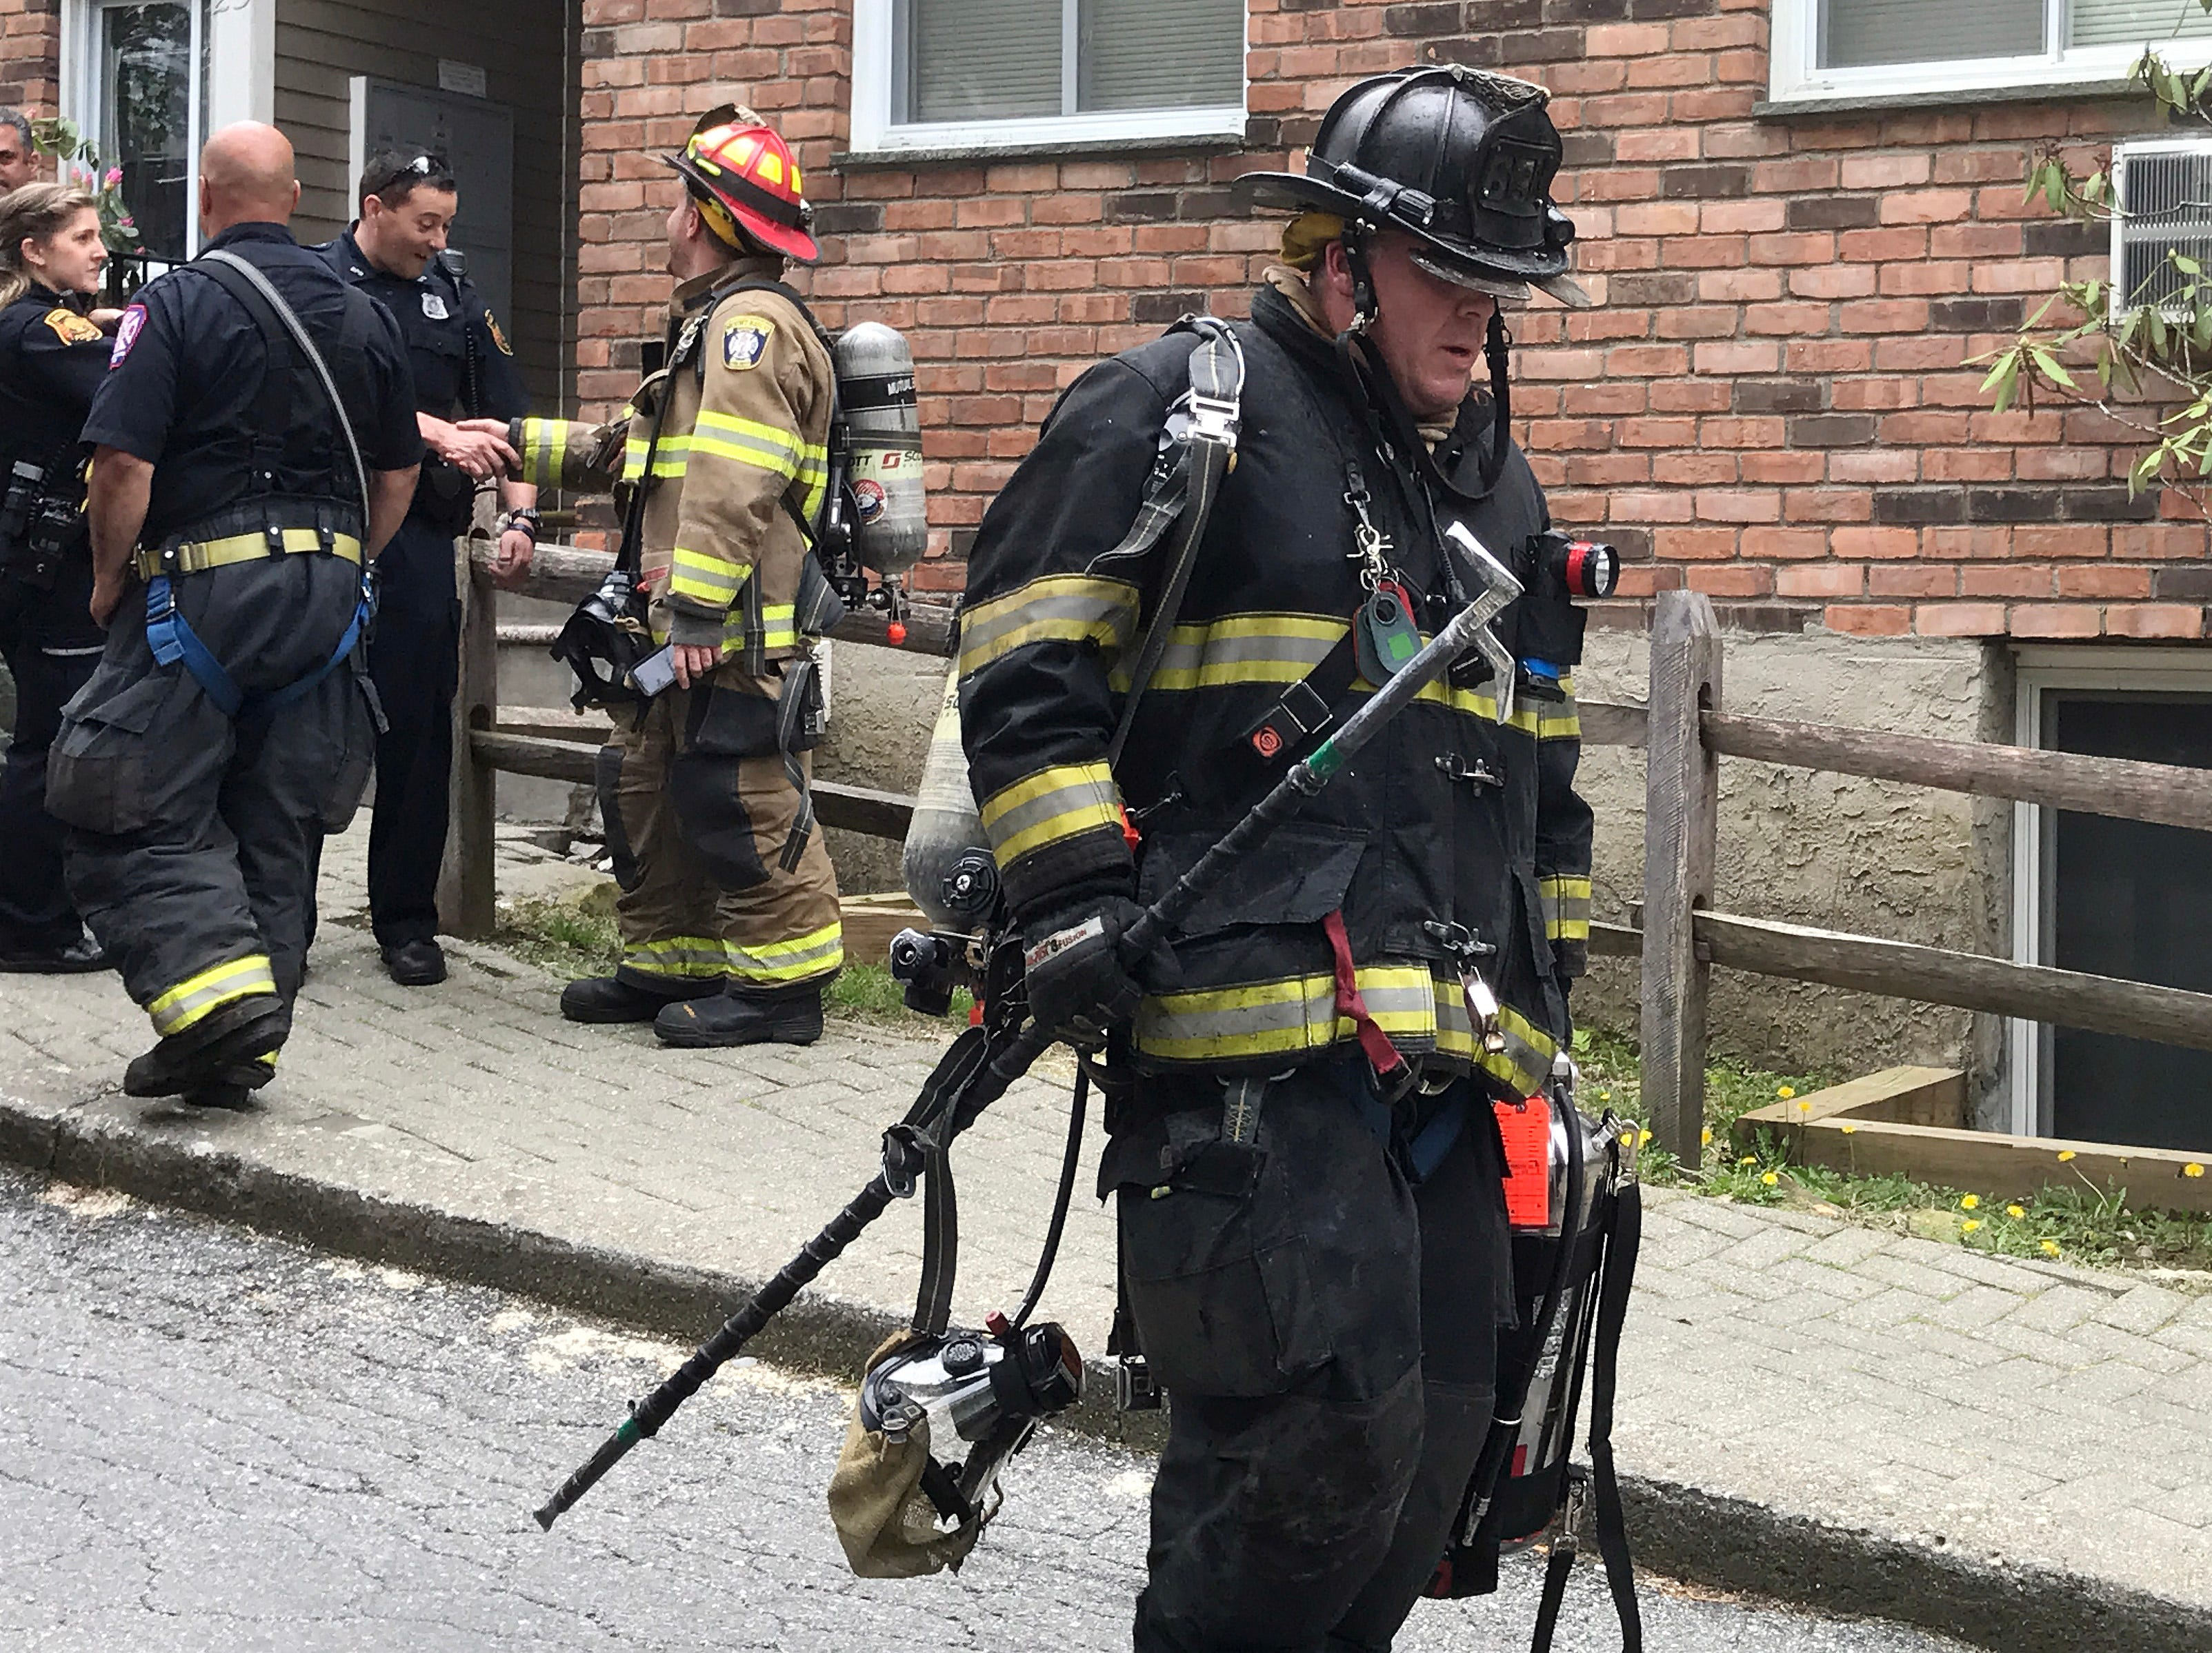 Bedford Hills firefighters quickly extinguished a fire in an apartment on Rome Avenue in Bedford Hills May 9, 2019. Firefighters from Katonahand  Mt. Kisco assisted at the scene.